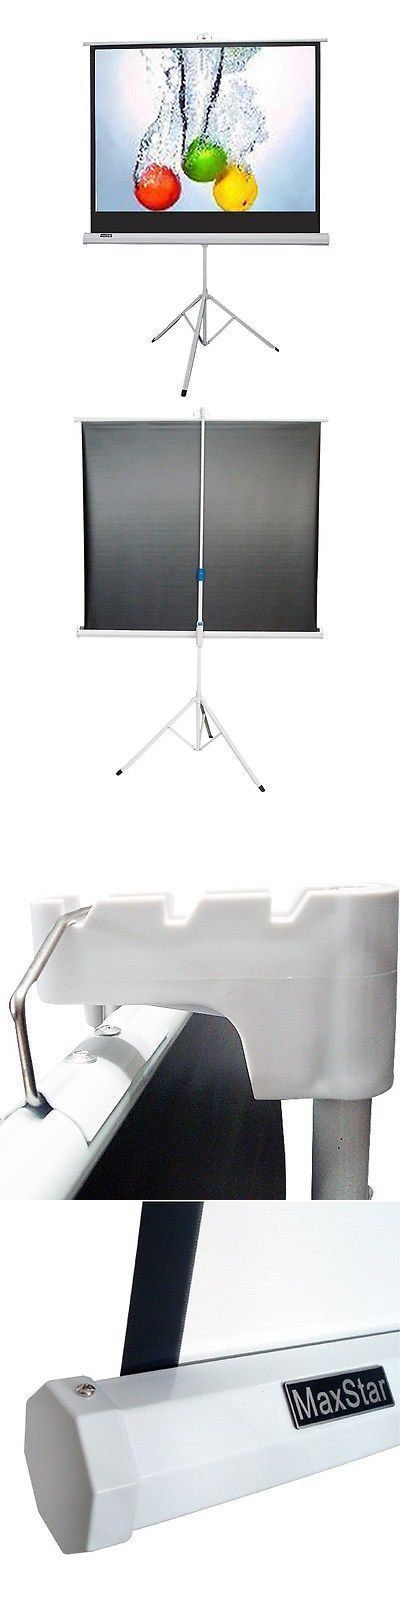 Projection Screens and Material: Maxstar 60X60 Portable Tripod Projector Screen 1:1 Video Formate Matte White BUY IT NOW ONLY: $69.95 #portableprojectorscreen #projectorscreen